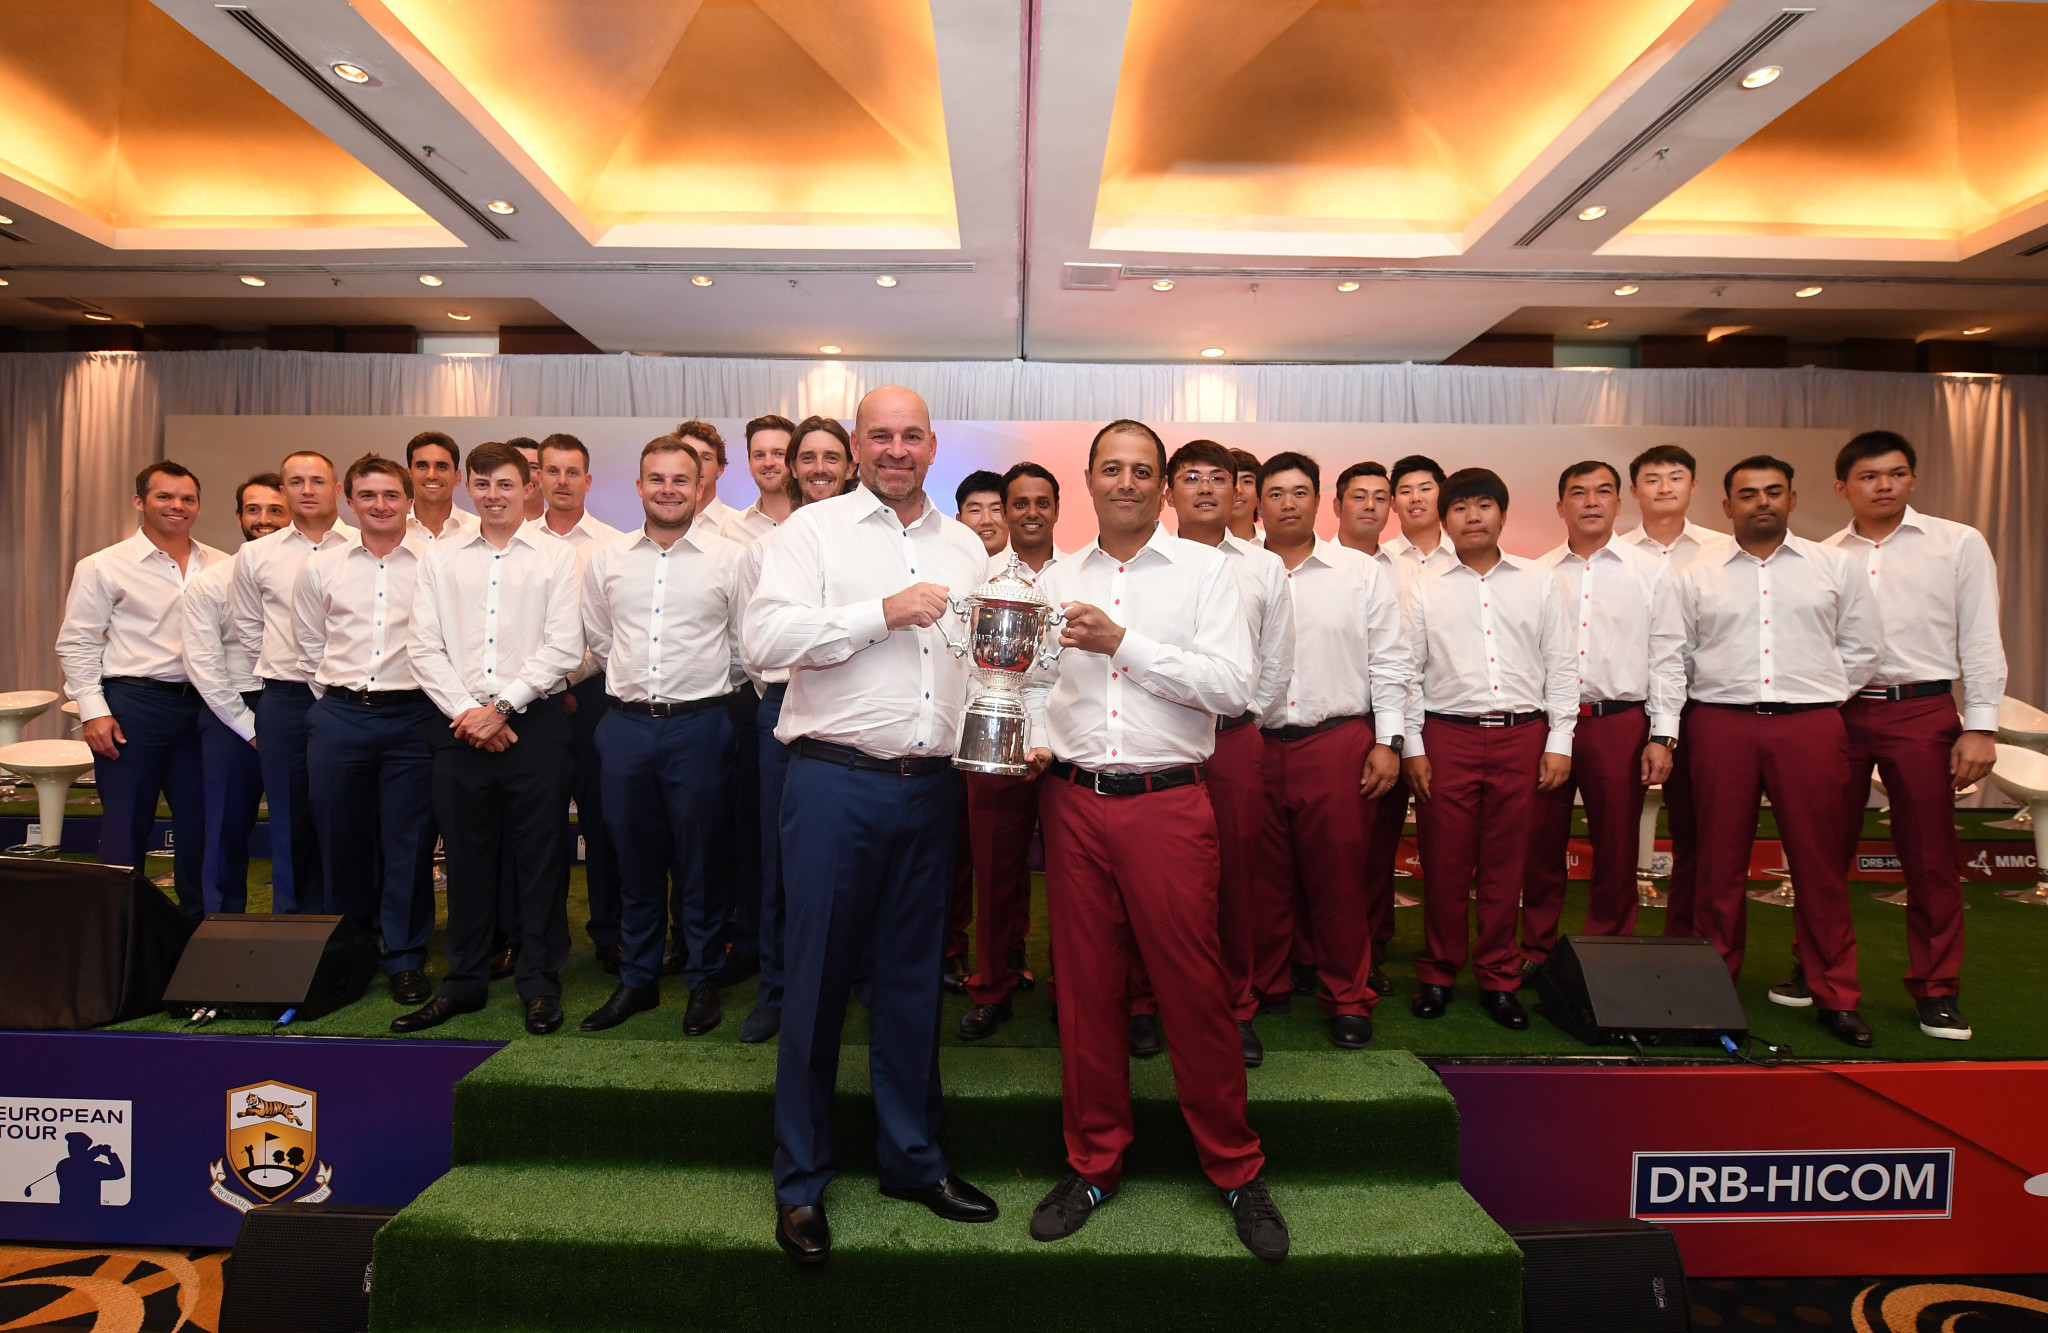 EurAsia Cup 2018: Thomas Bjorn admits sleepless nights over Ryder Cup